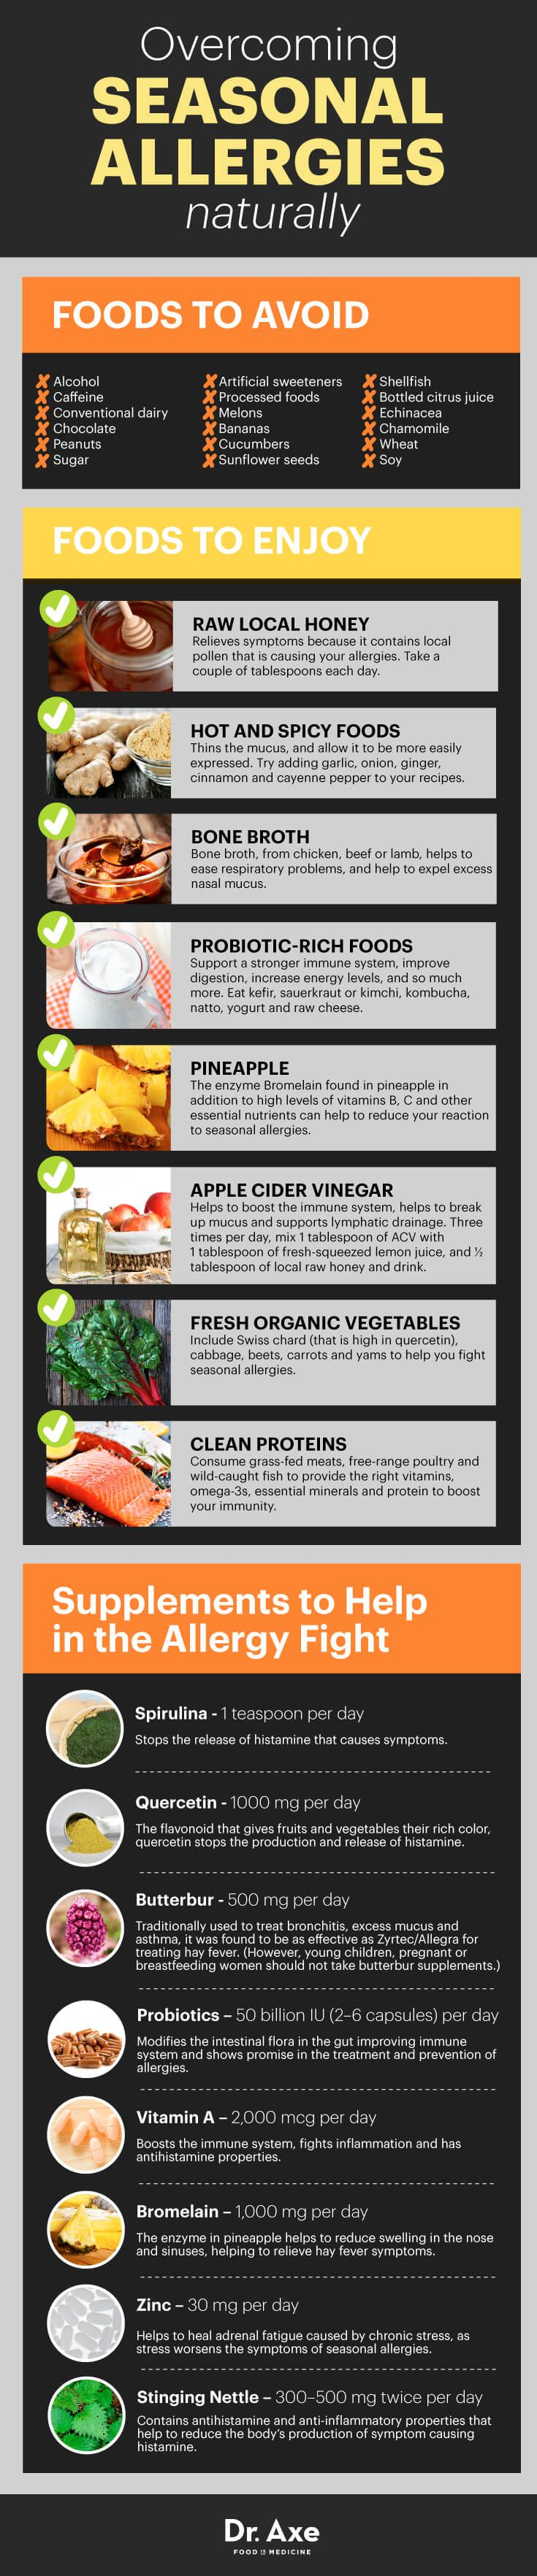 Natural remedies cures for seasonal allergies infographic chart.